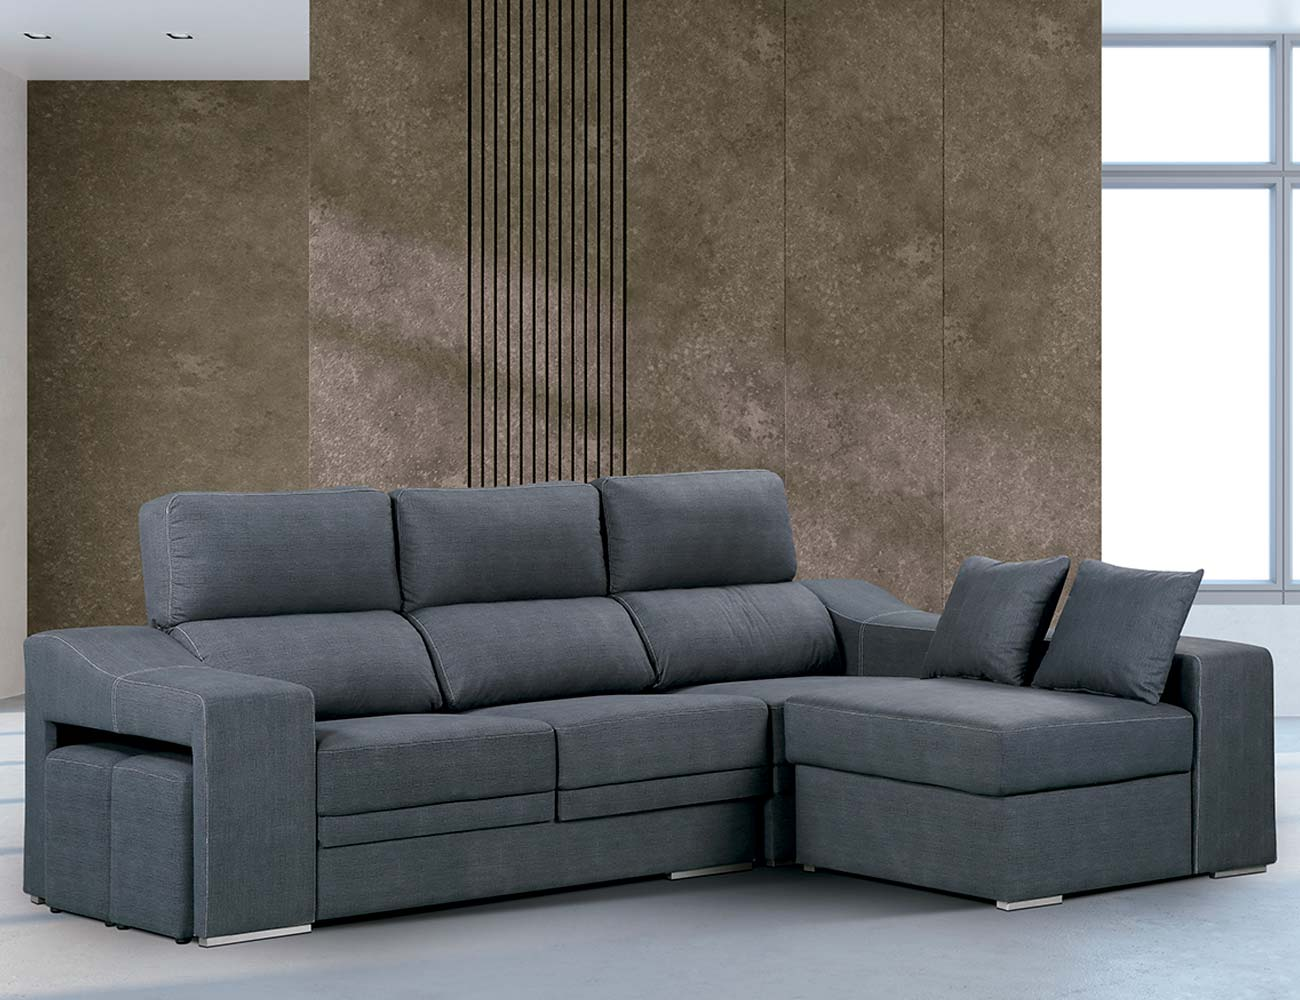 Sofa chaiselongue reversible marengo cesar 2